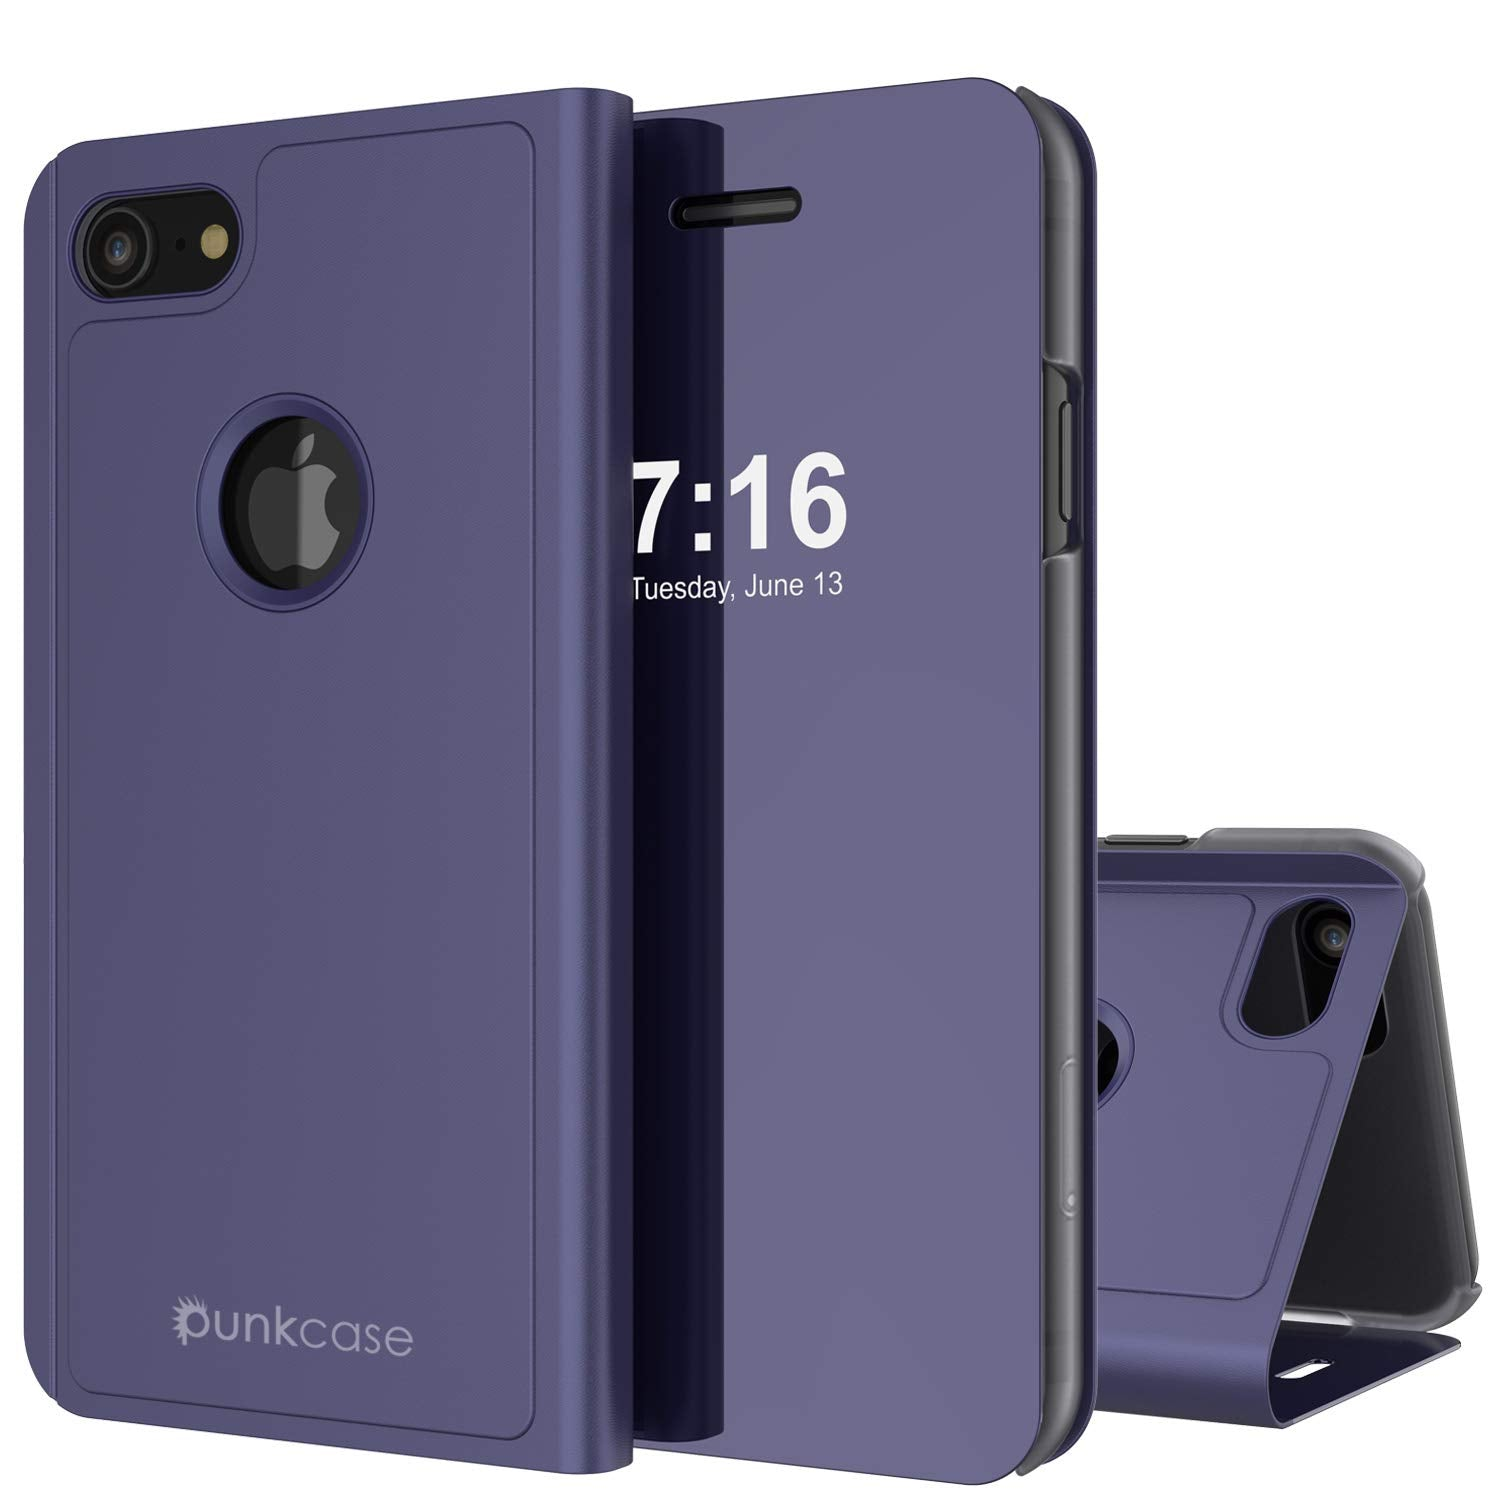 Punkcase iPhone 7 Reflector Case Protective Flip Cover [Purple]